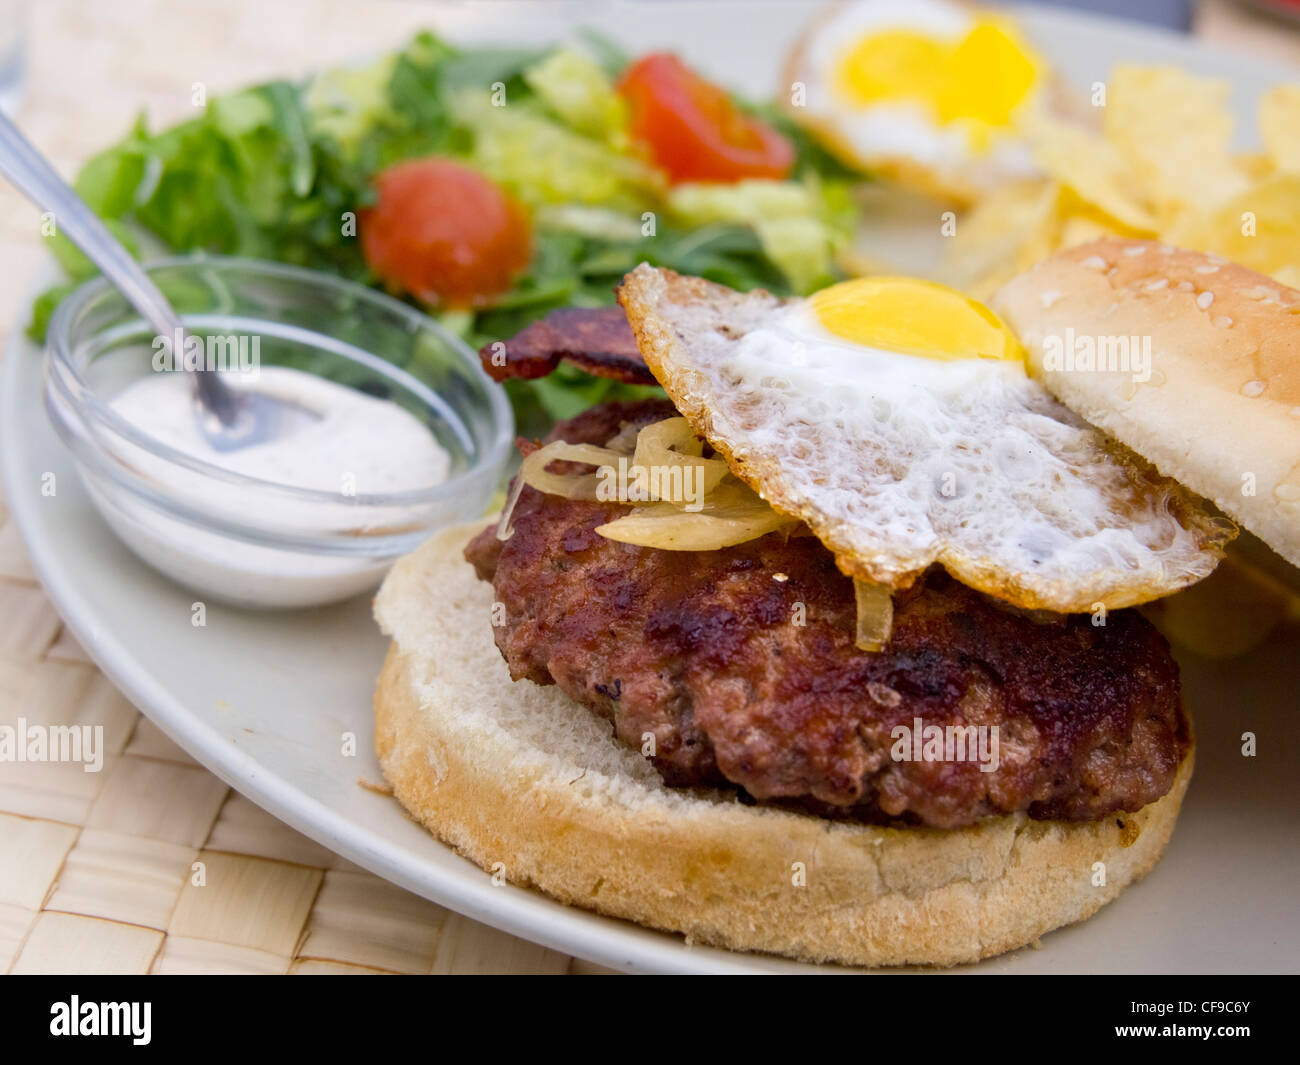 Grilled hamburger with fried egg and salad - Stock Image